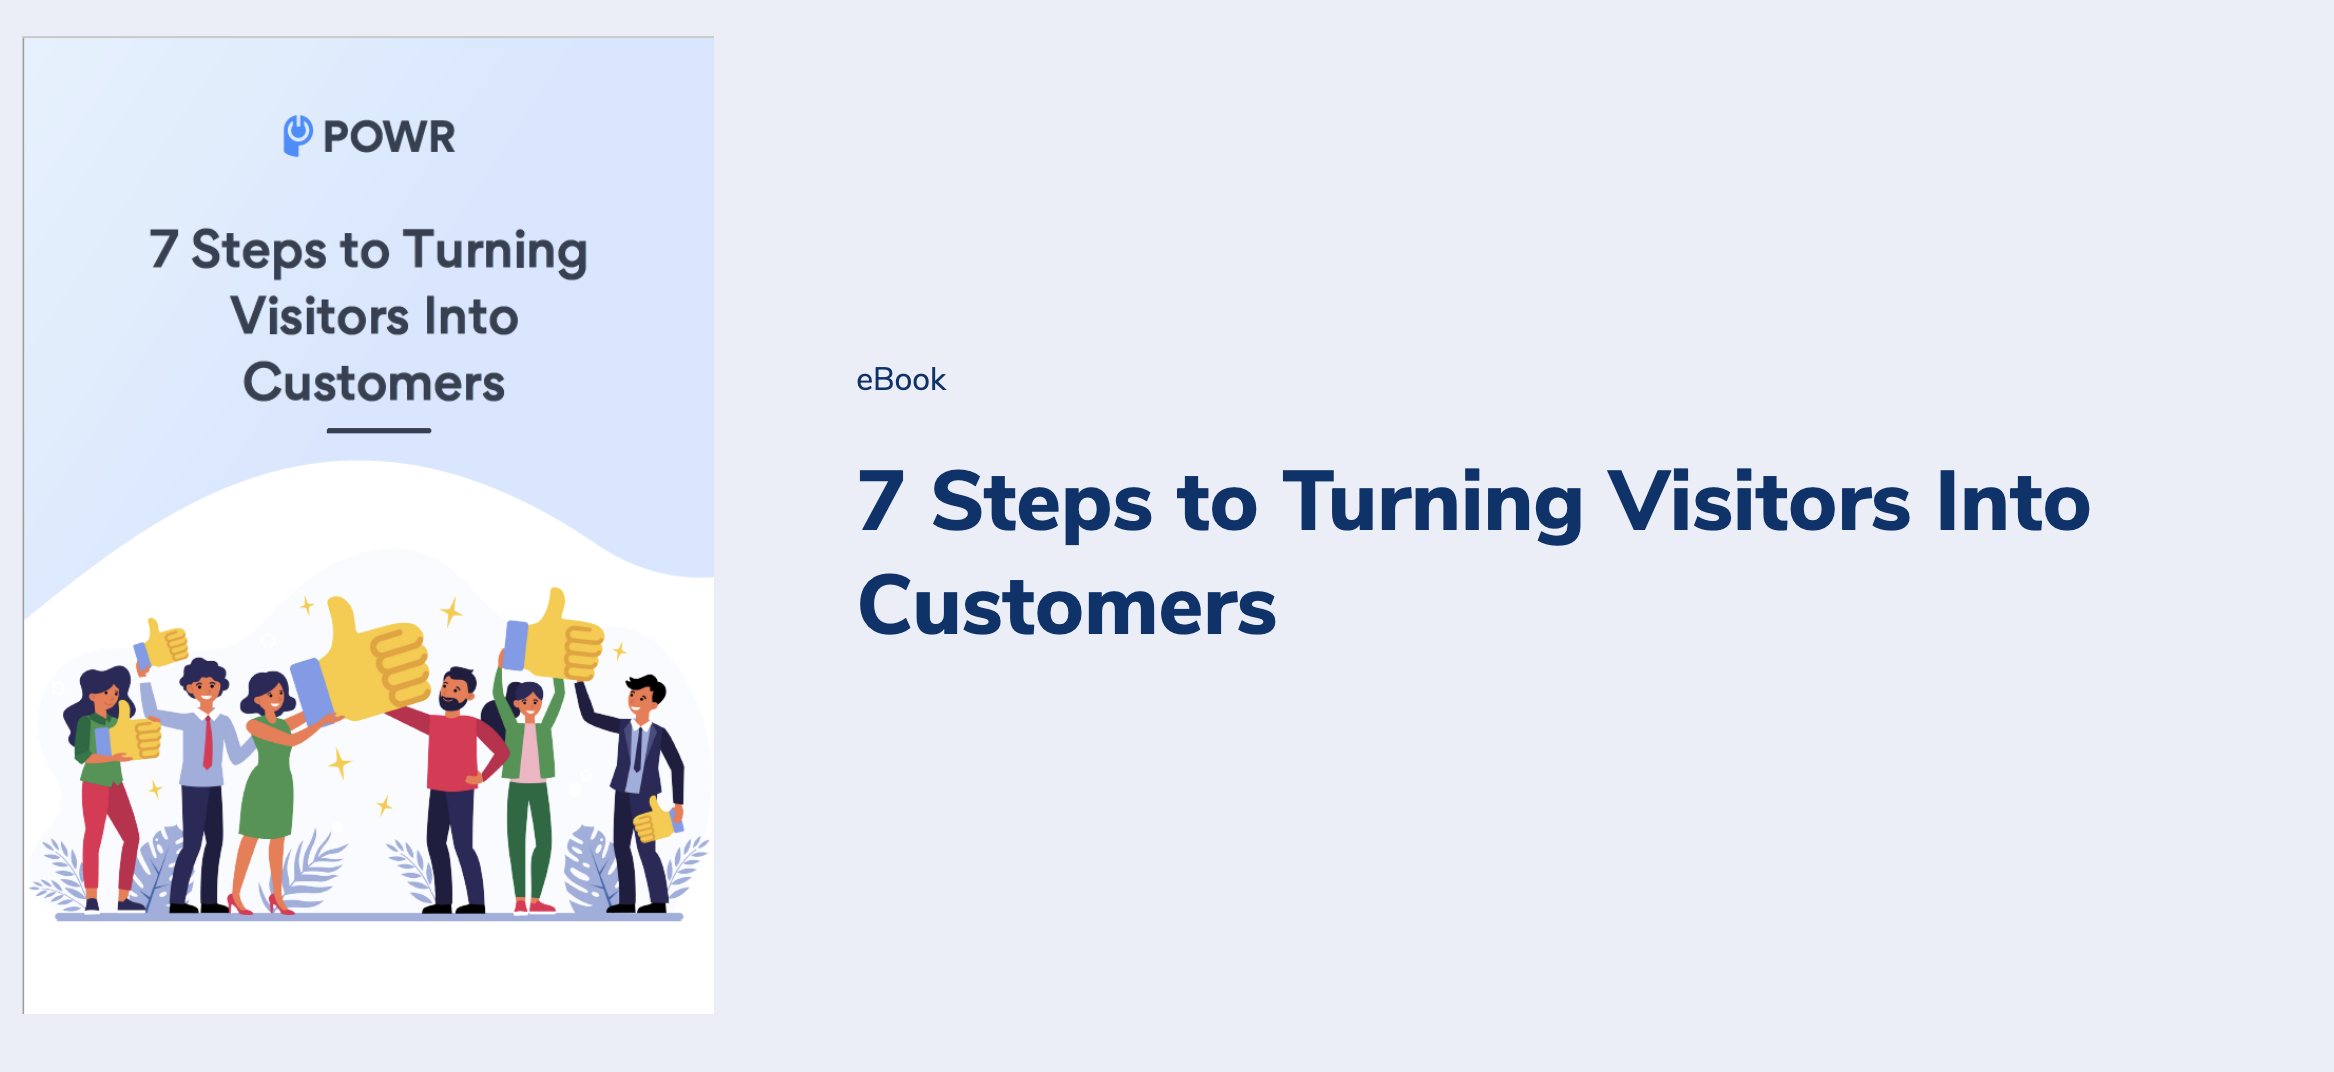 Start your business online and turn visitors into customers